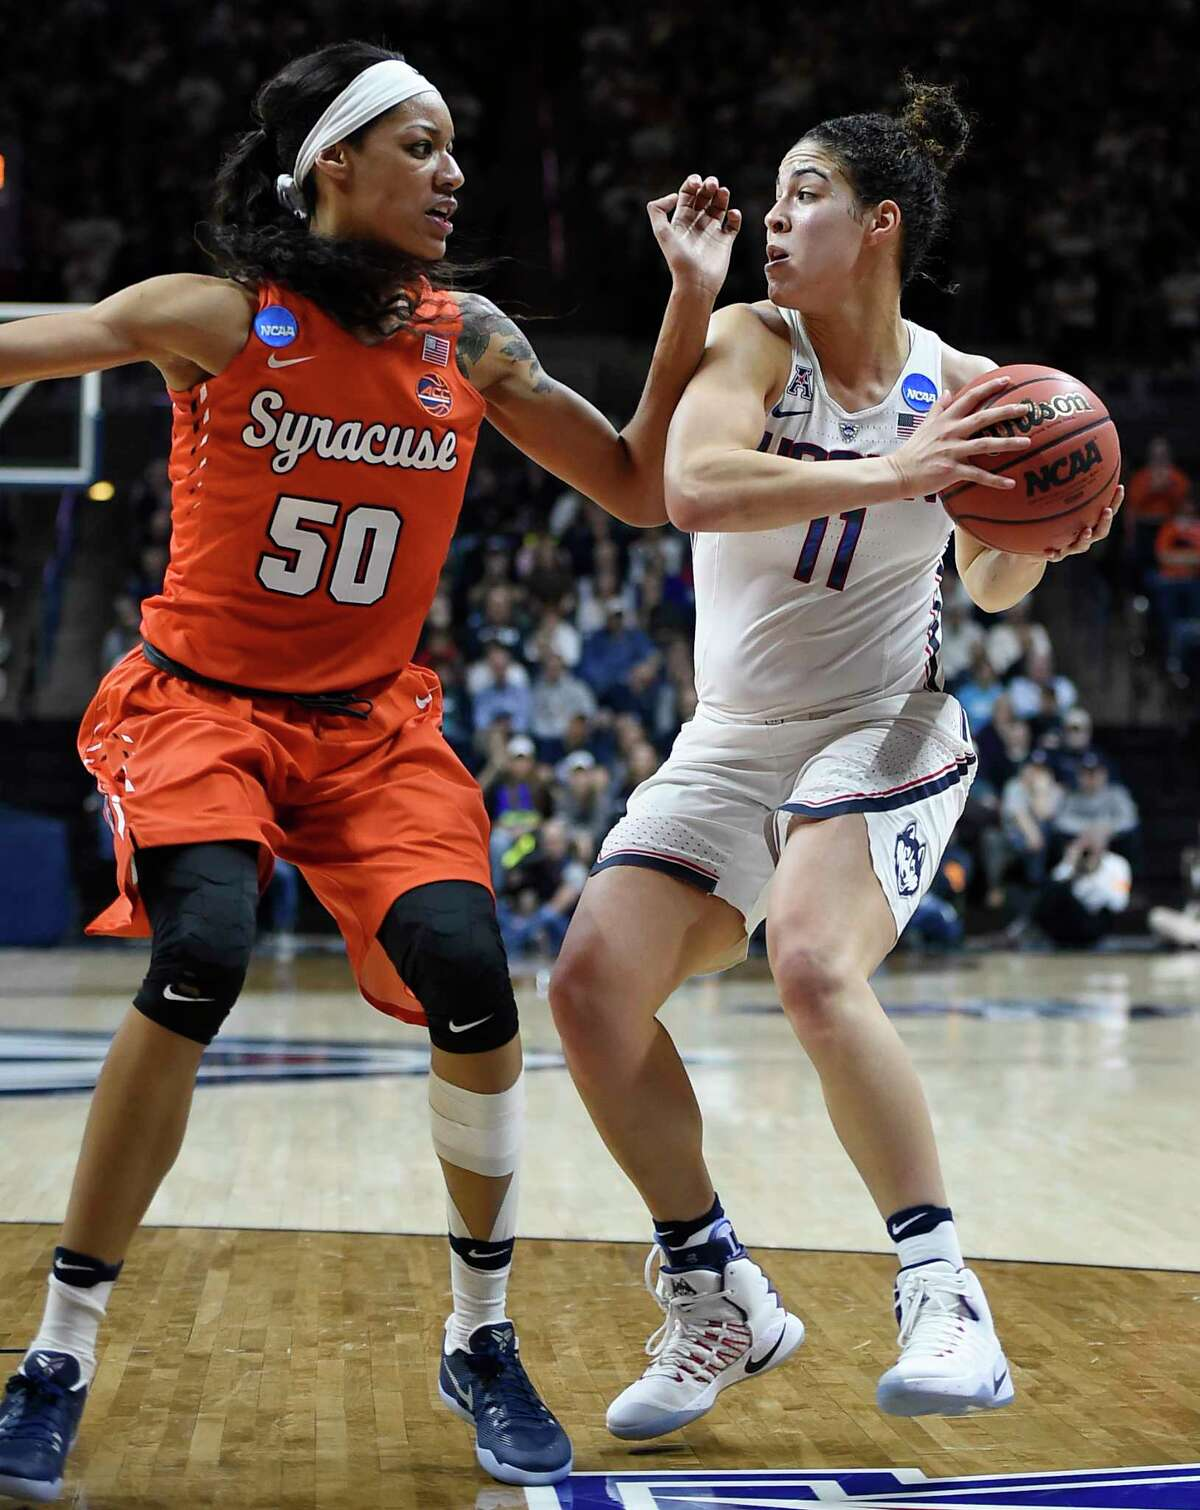 Connecticut's Kia Nurse keeps the ball from Syracuse's Briana Day, left, during the second half of a second-round game in the NCAA women's college basketball tournament, Monday, March 20, 2017, in Storrs, Conn. (AP Photo/Jessica Hill) ORG XMIT: CTJH106